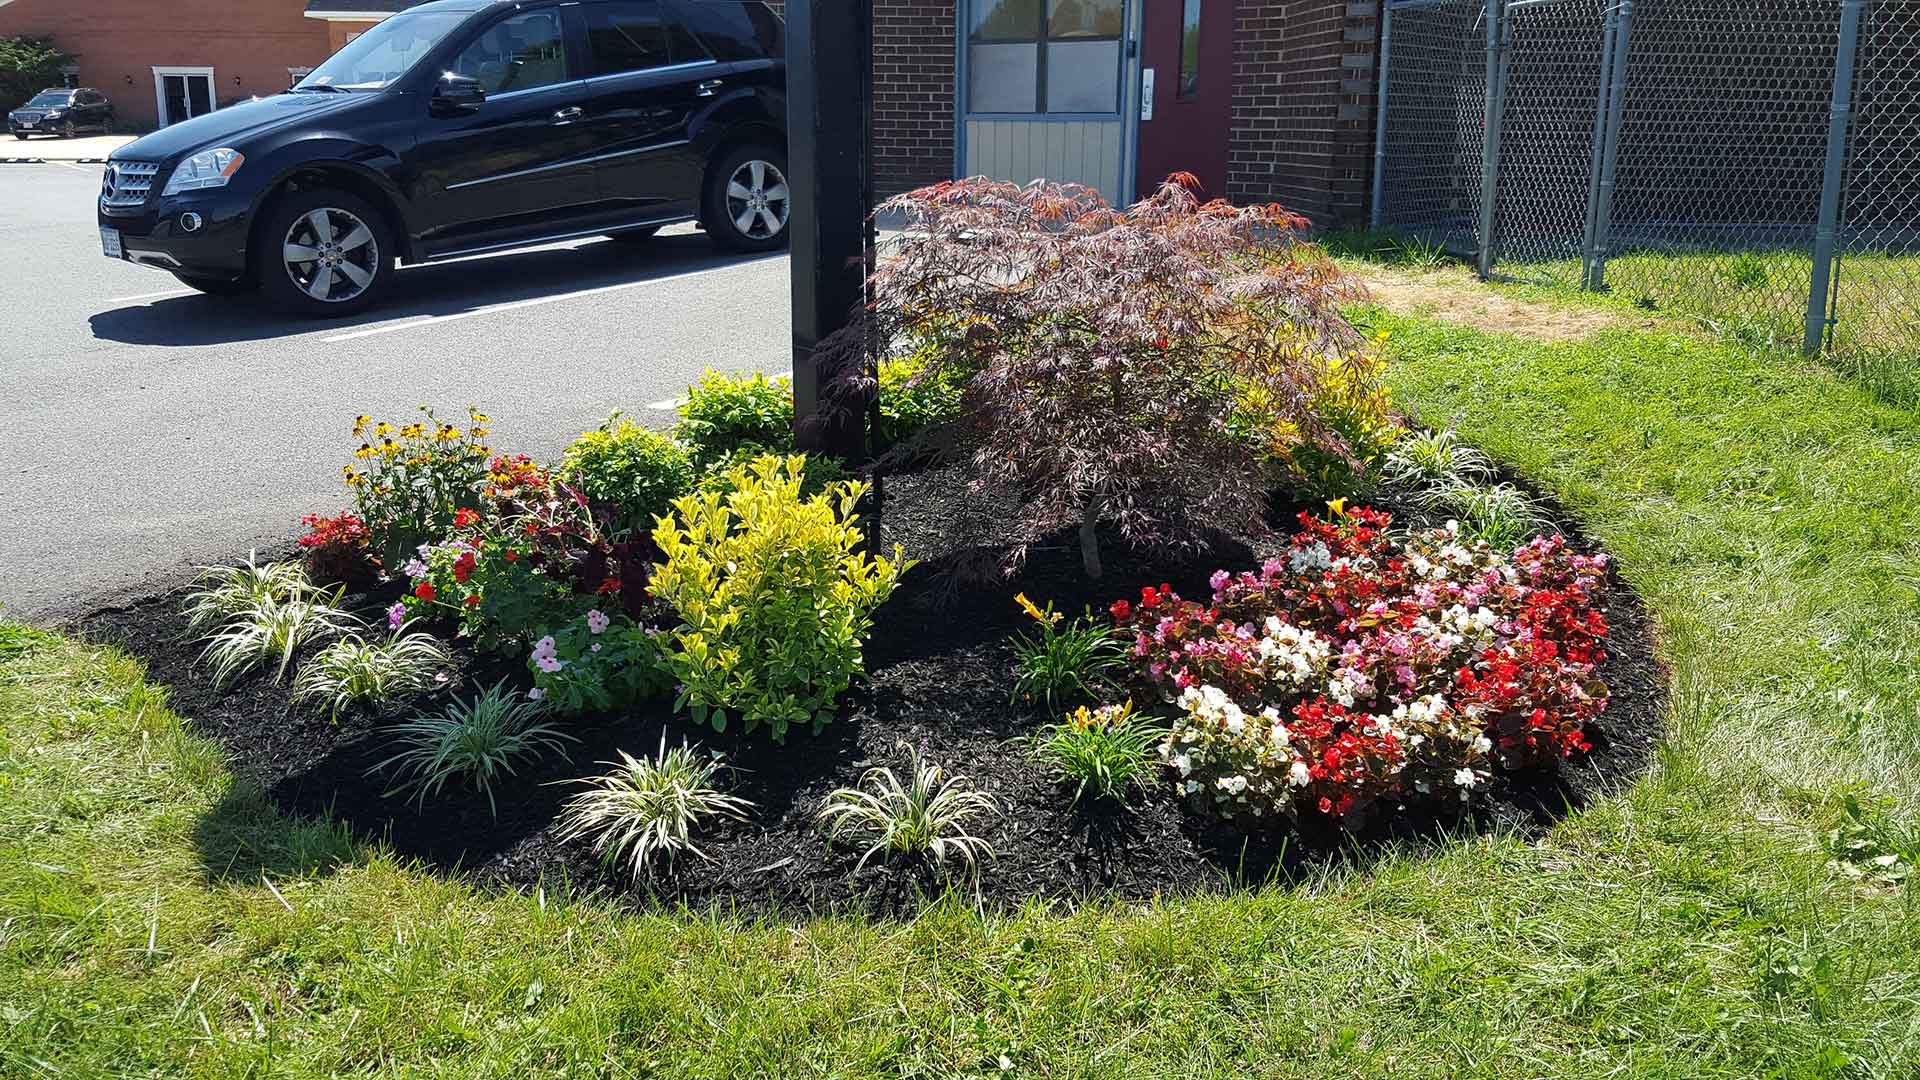 Commercial property landscaping in Bristow, VA